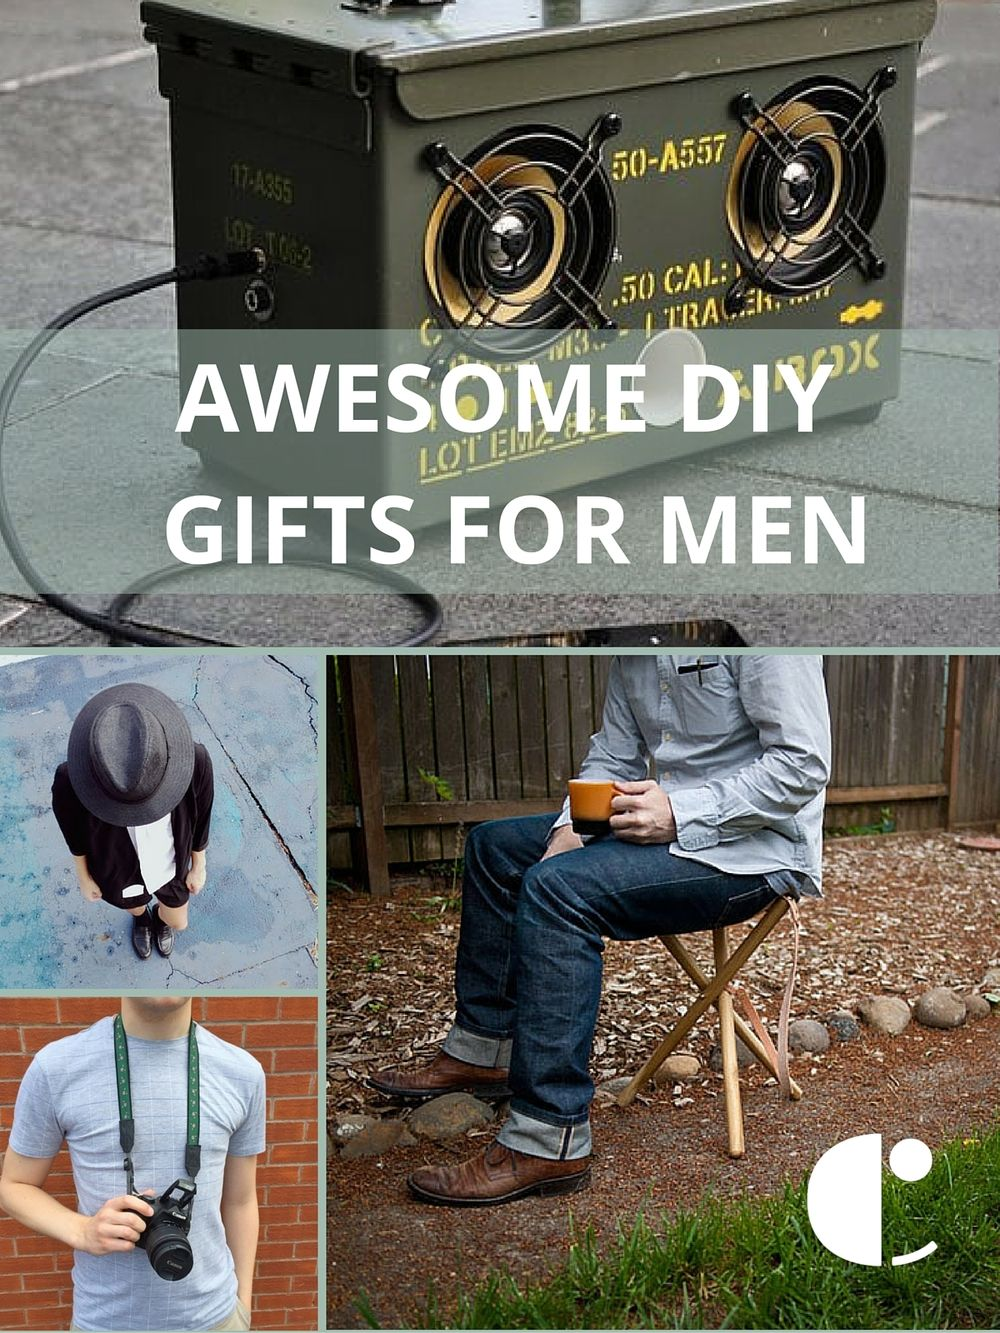 Gift guide 14 seriously awesome diy gifts for men diy ideas diy xmas gifts solutioingenieria Images